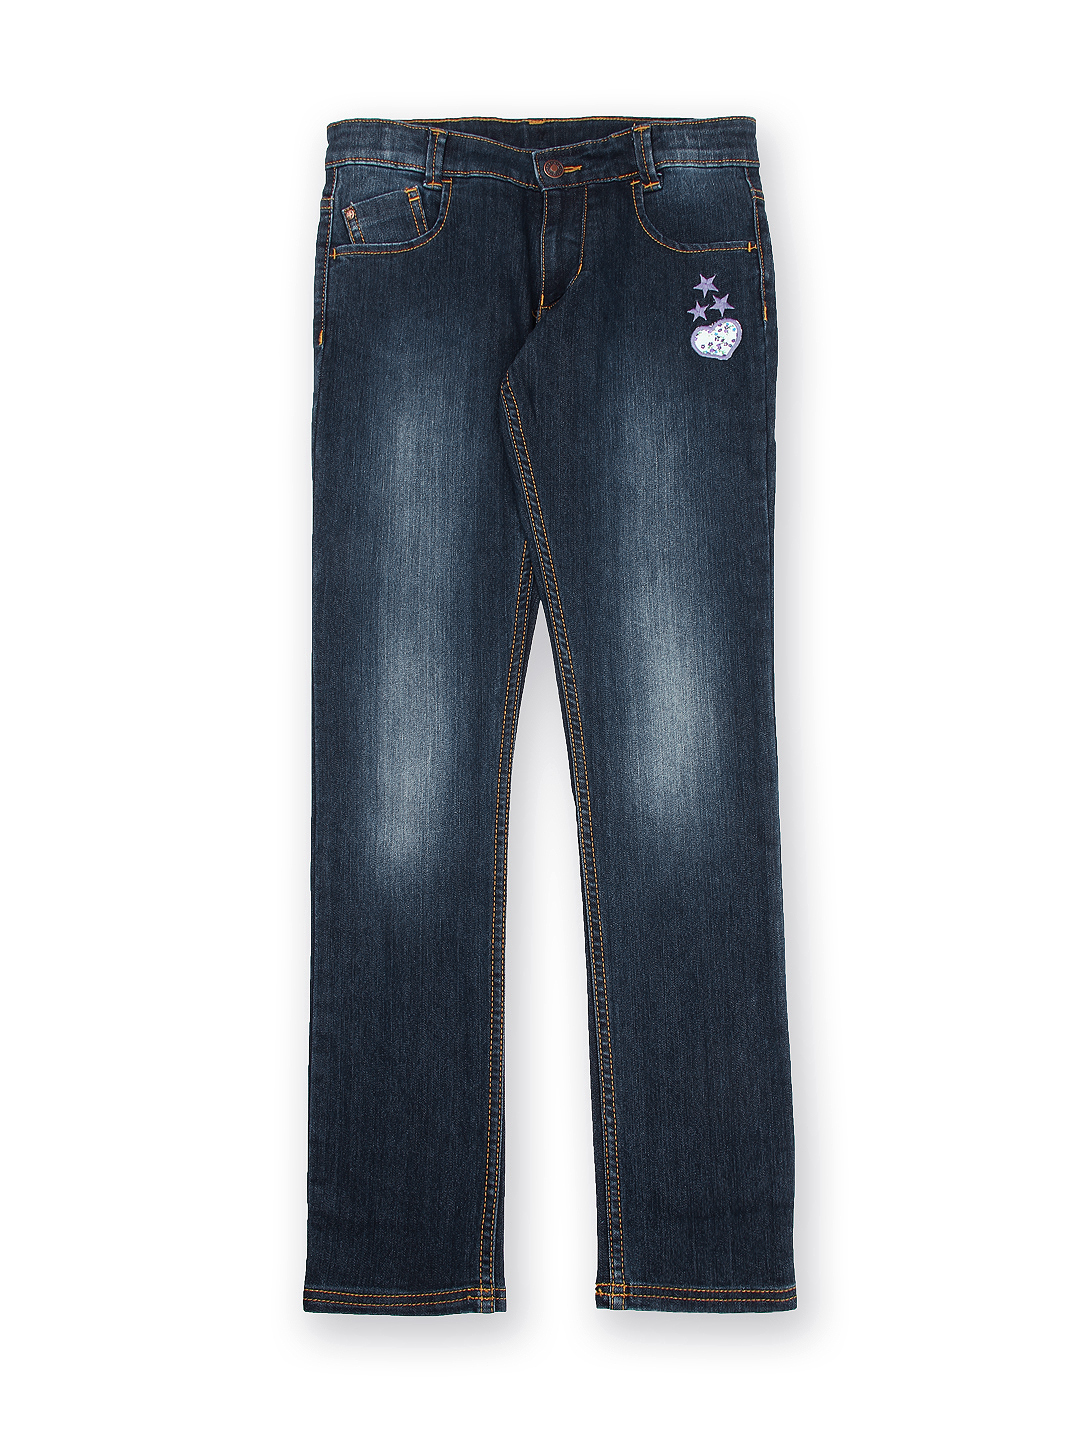 United Colors of Benetton Girls Blue Skinny Fit Jeans Rs 1699 Rs 849